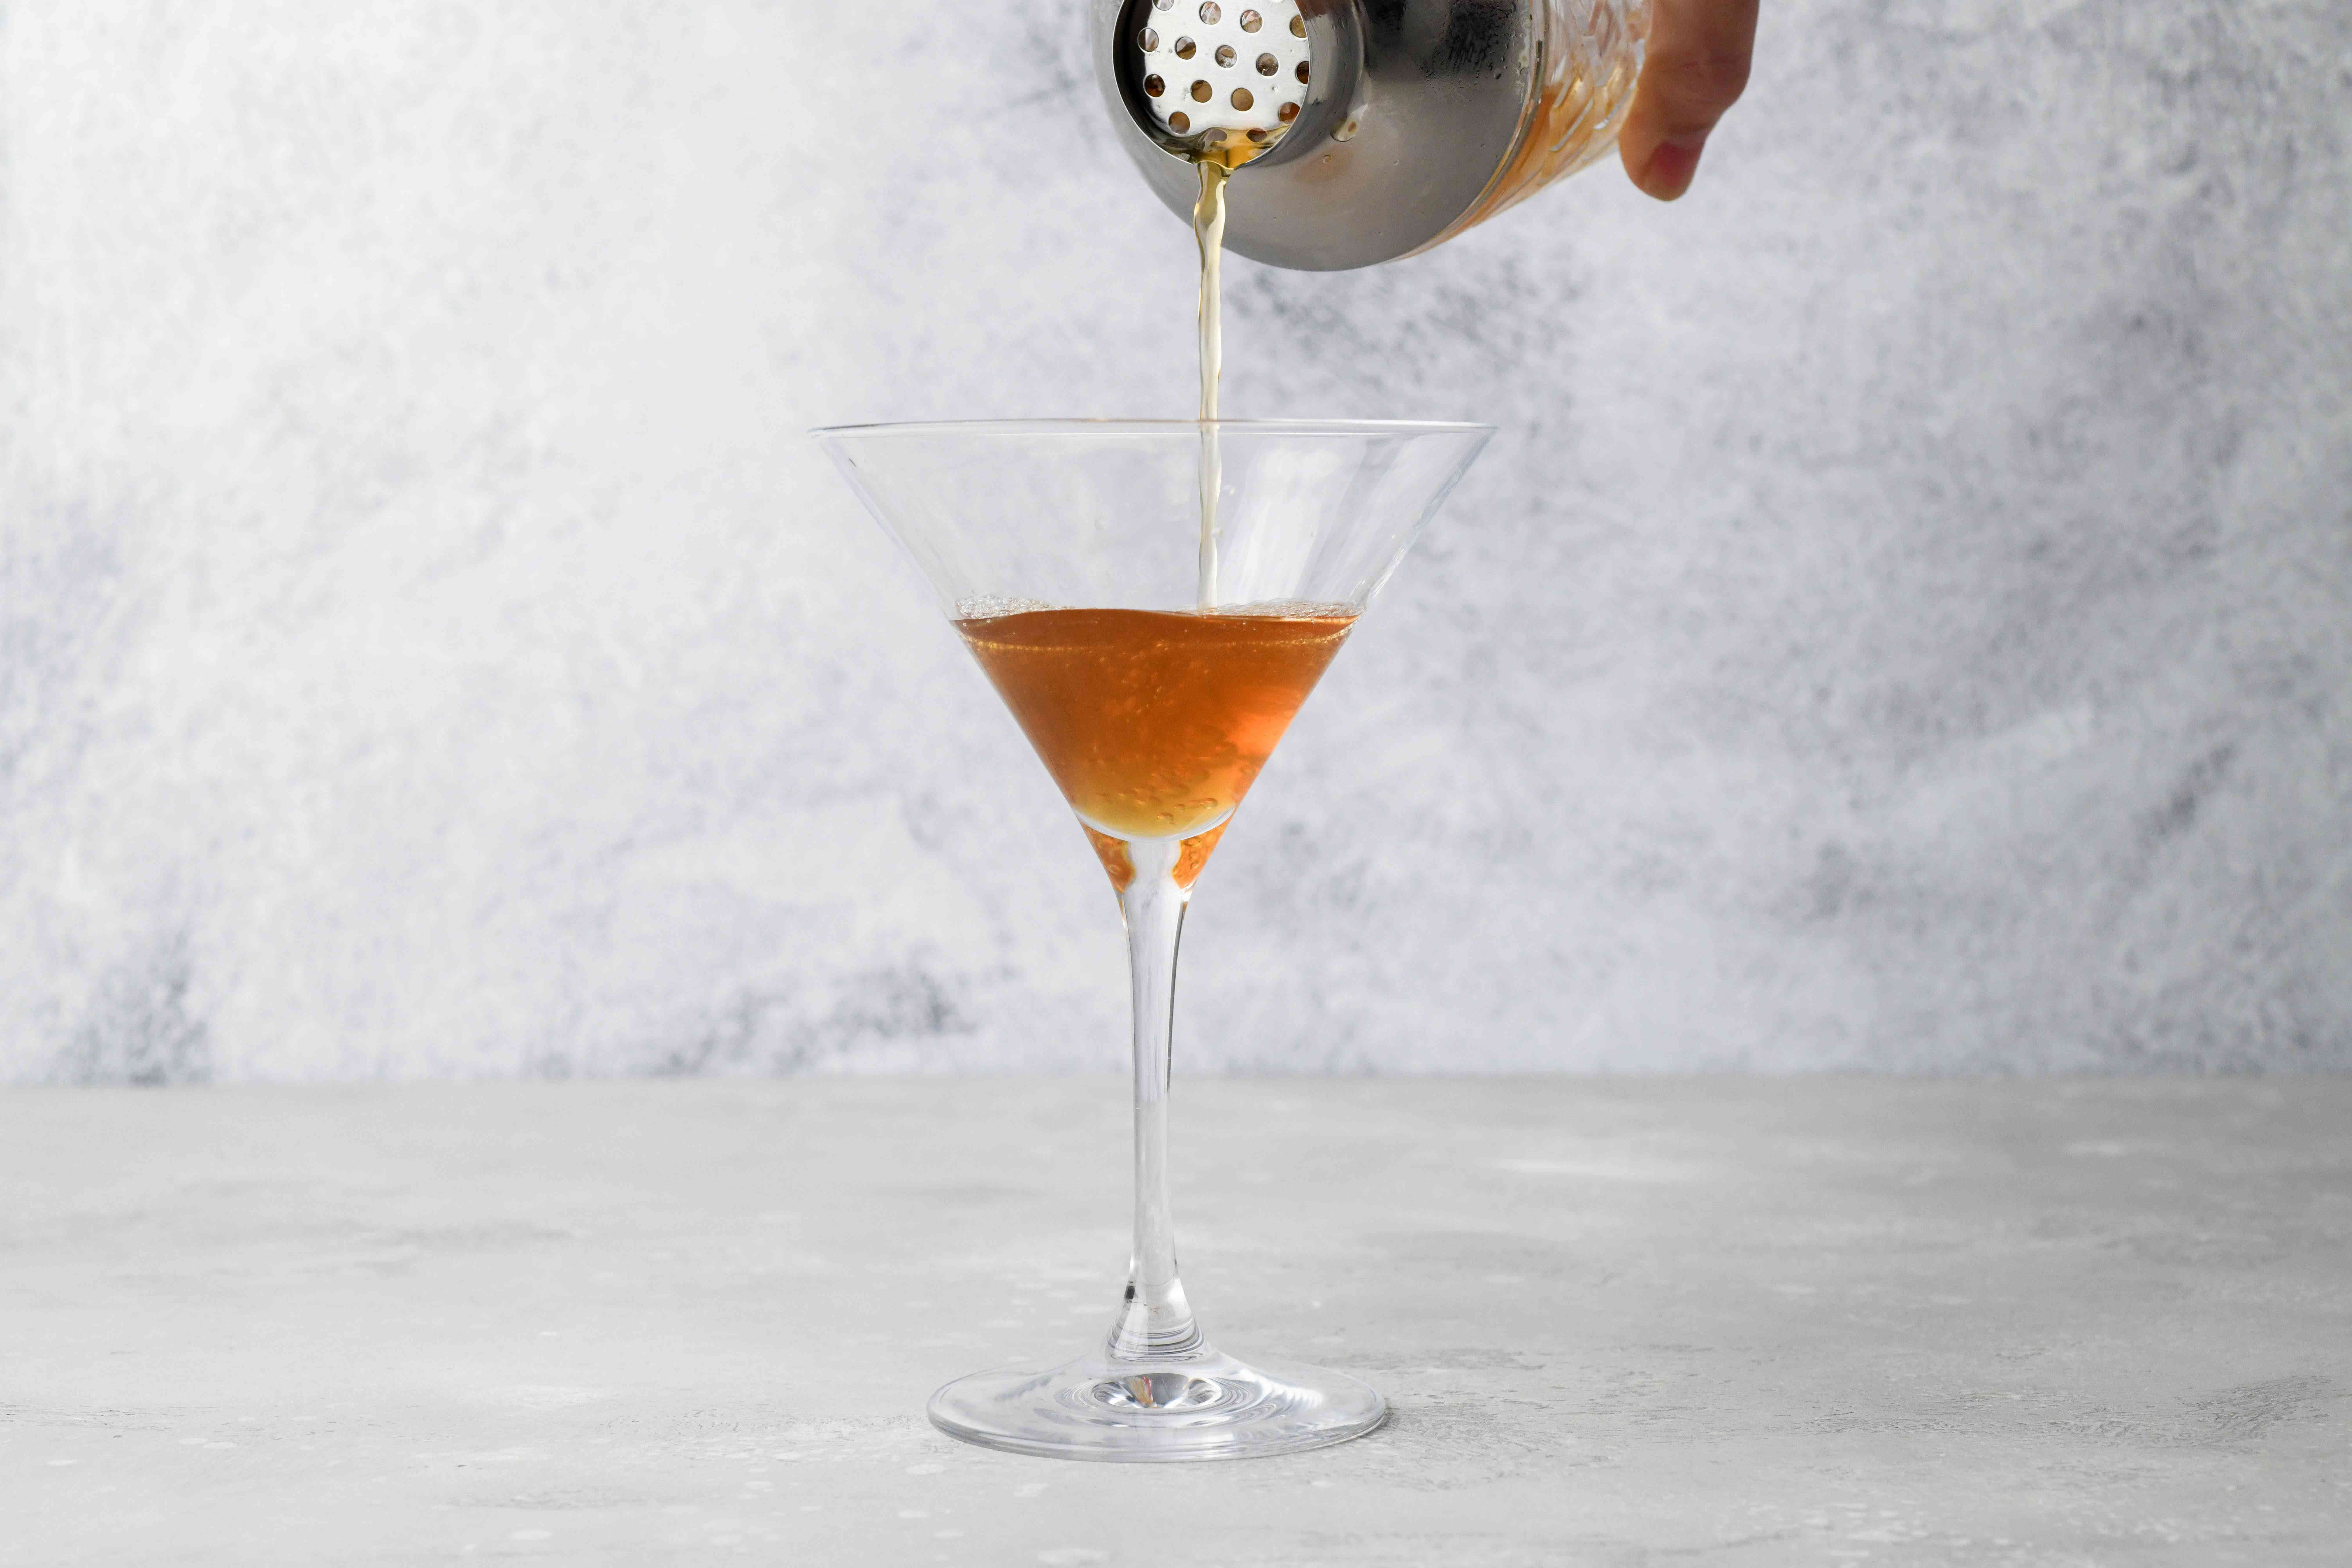 strain cocktail into a cocktail glass